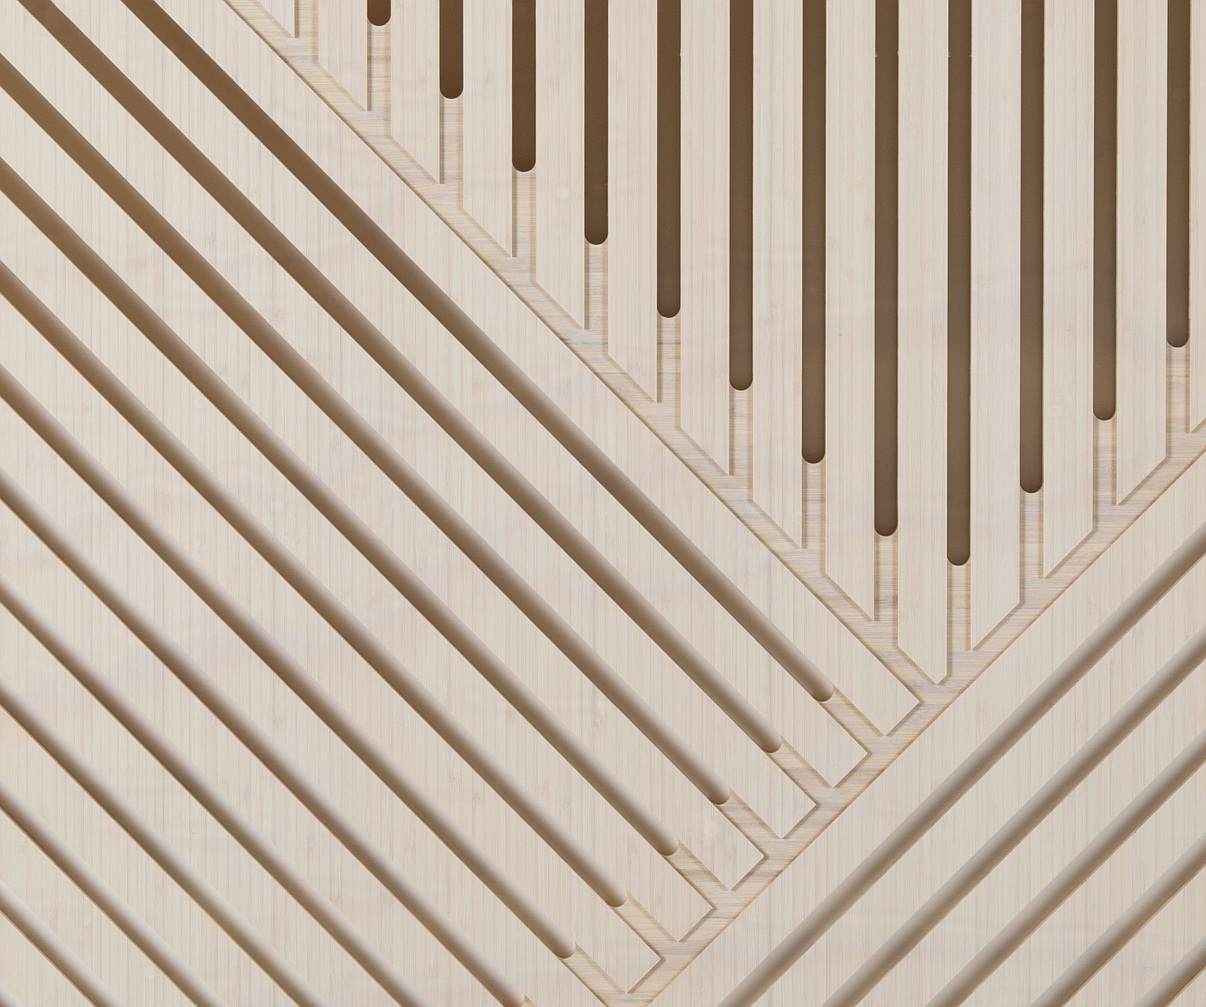 Futura Sound | Futura Wall Panels | Bamboo and Palm Wood